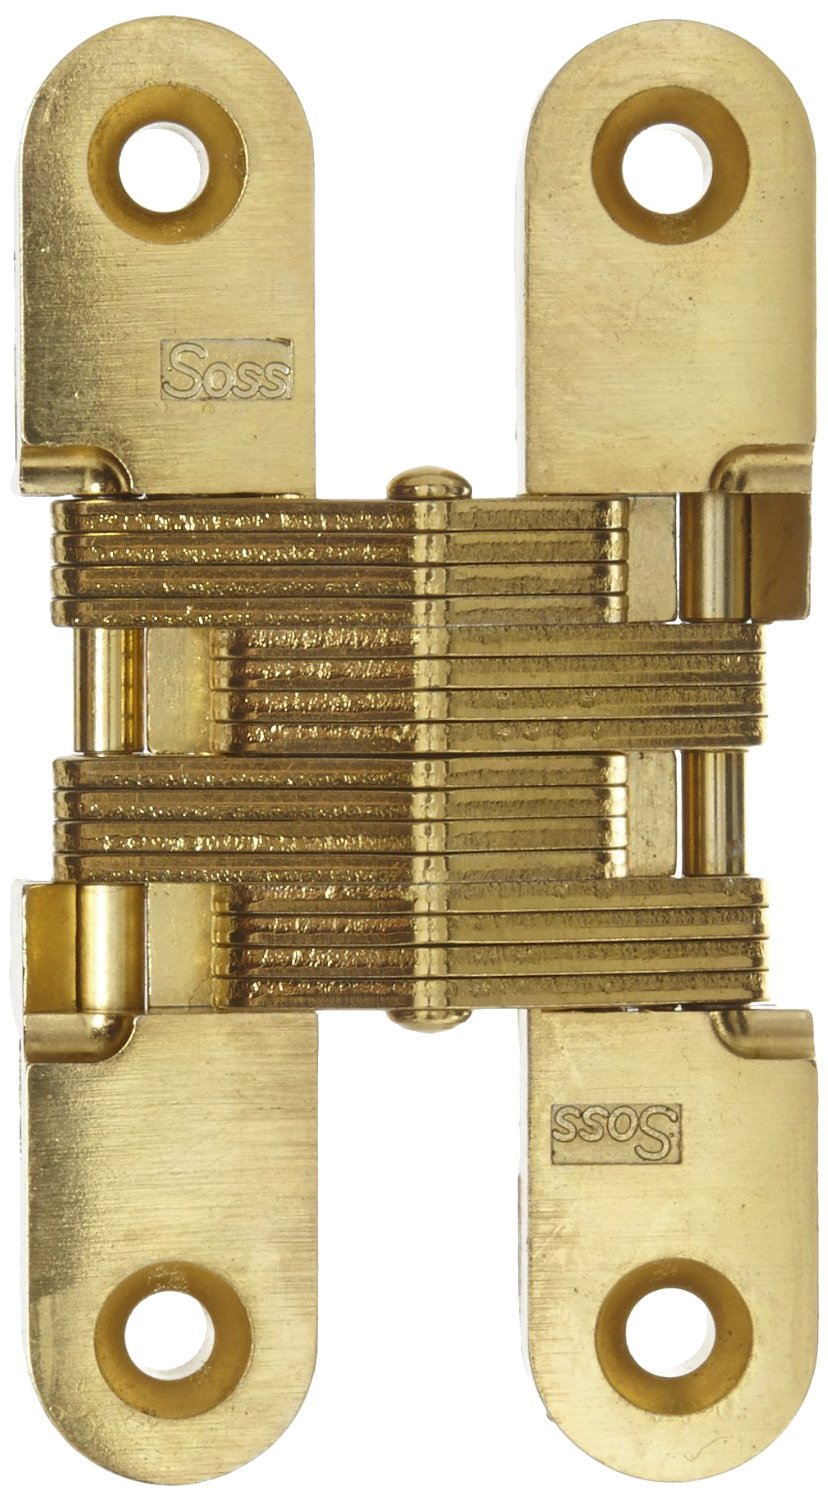 SOSS Mortise Mount Invisible Hinge with 4 Holes, Zinc, Satin Brass Finish, 2-3/4'' Leaf Height, 5/8'' Leaf Width, 23/32'' Leaf Thickness, 8 x 1-1/4'' Screw Size